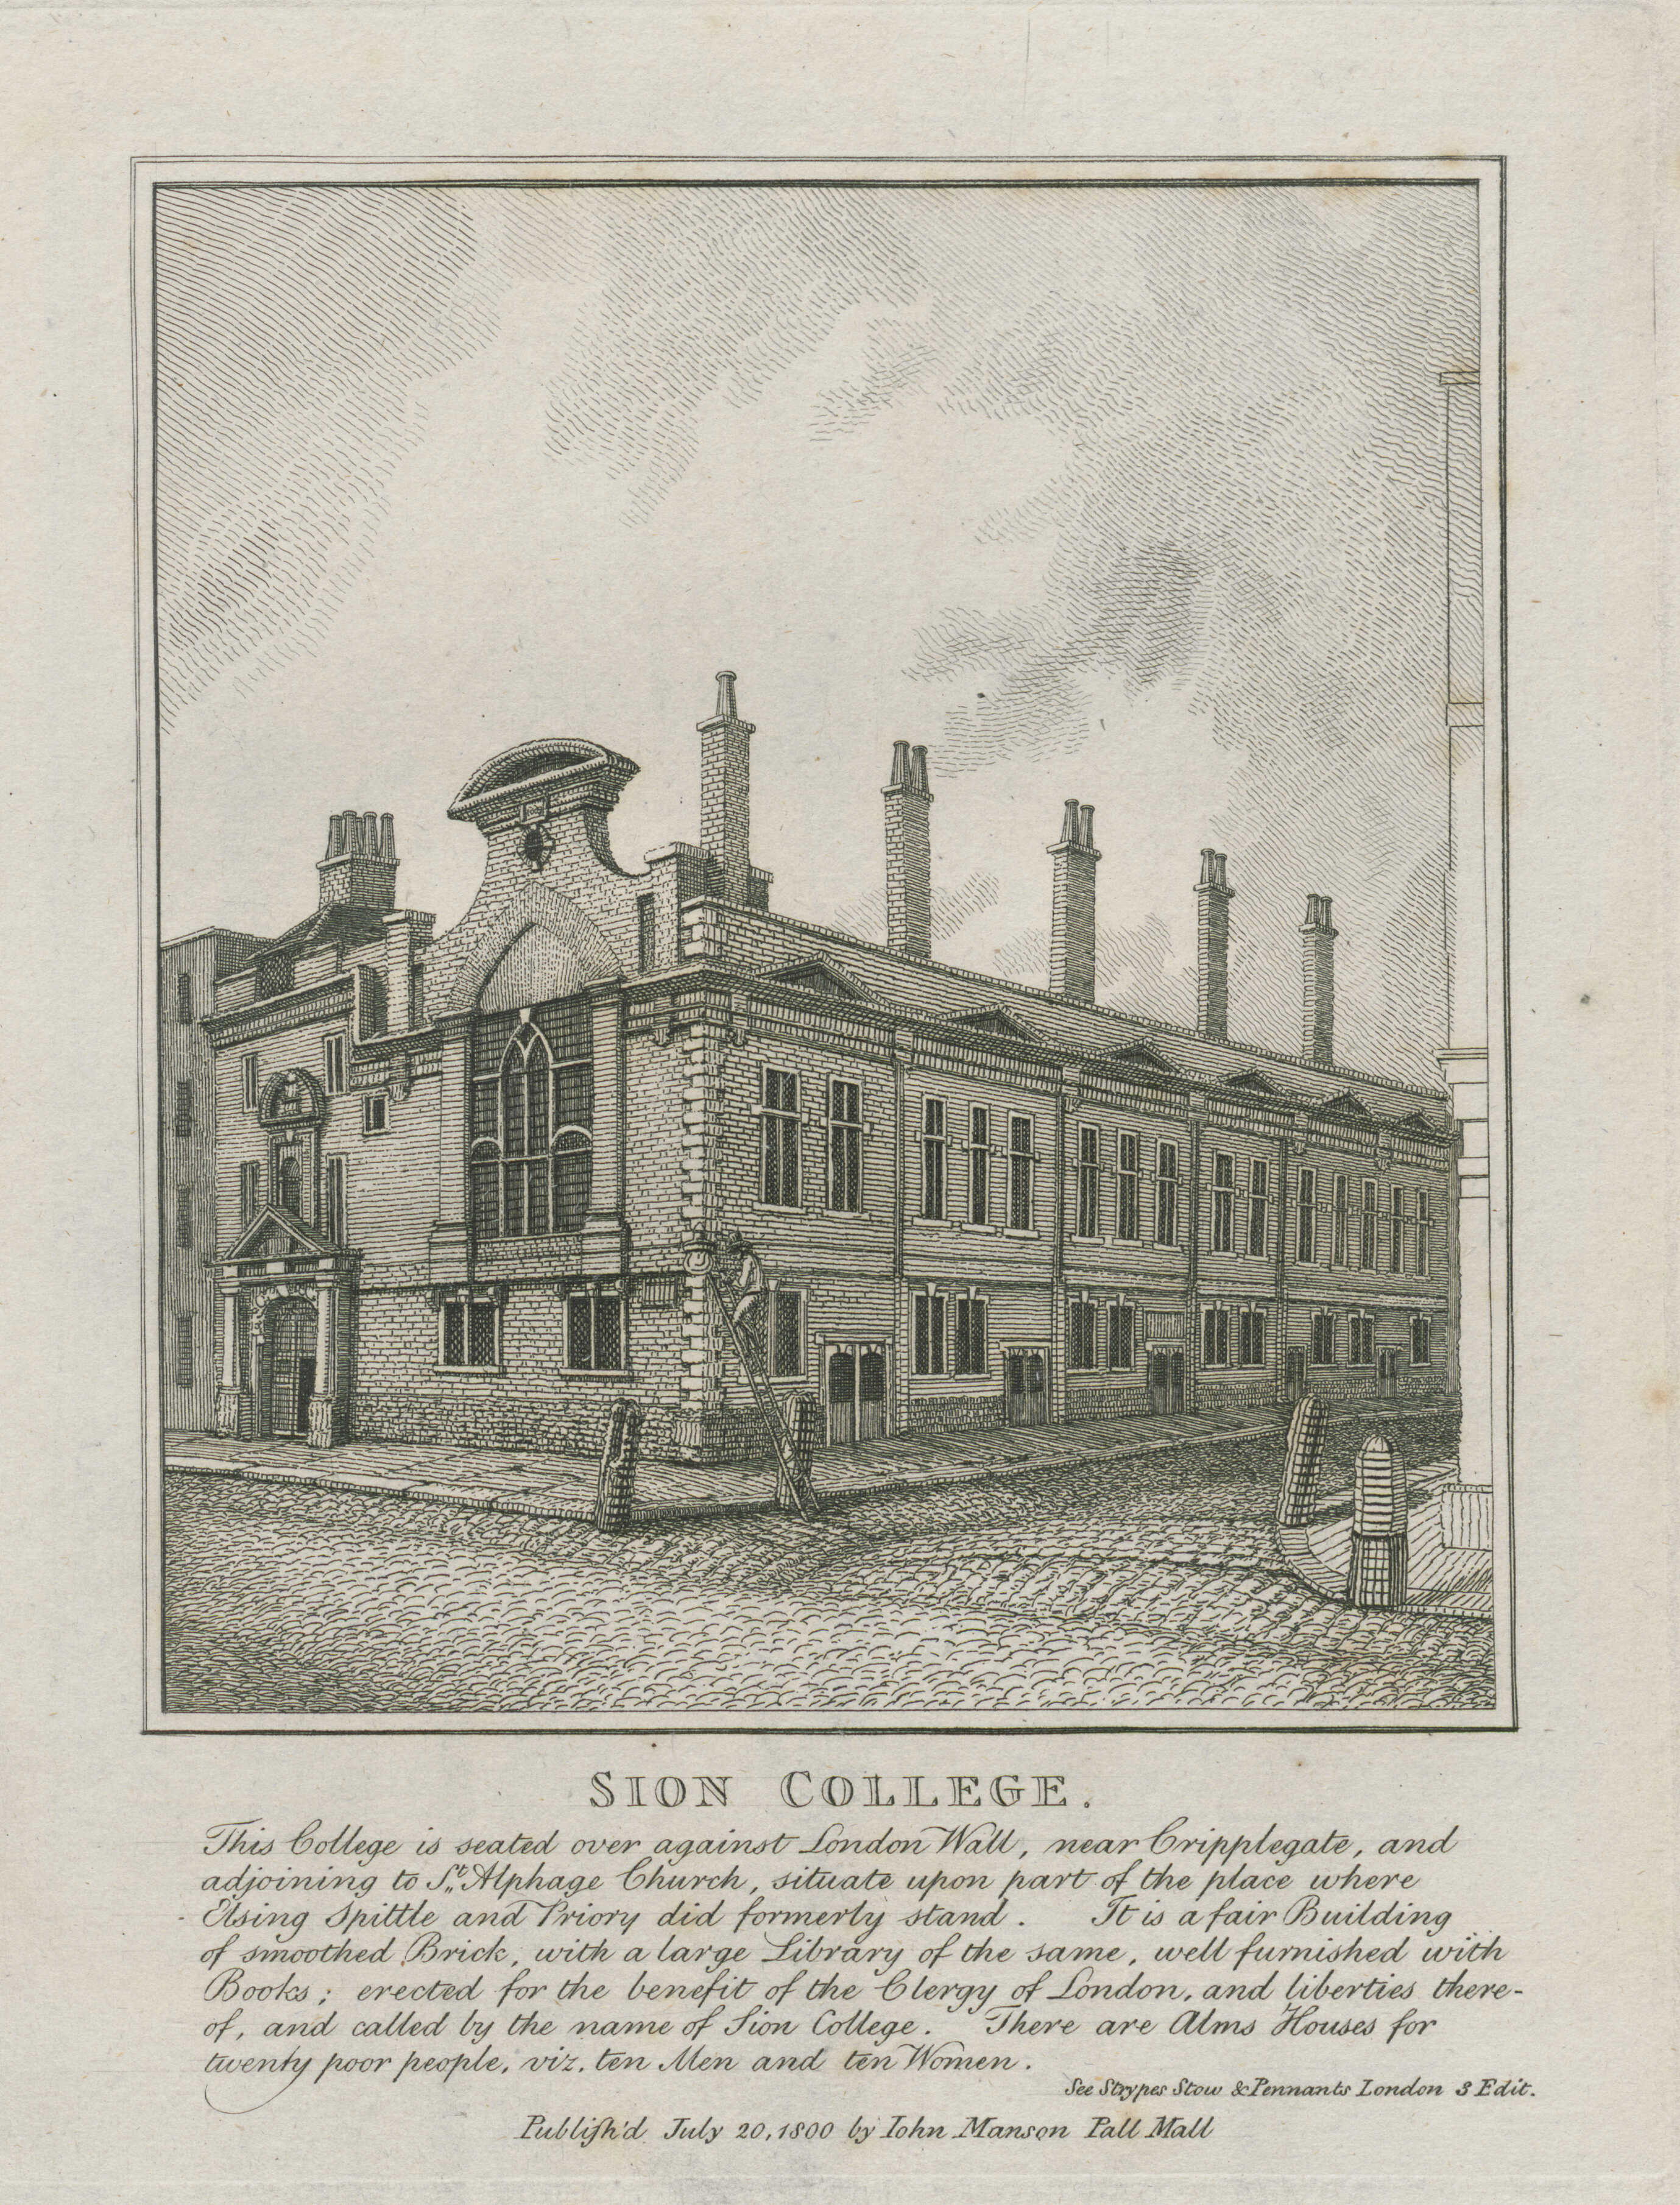 82-sion-college